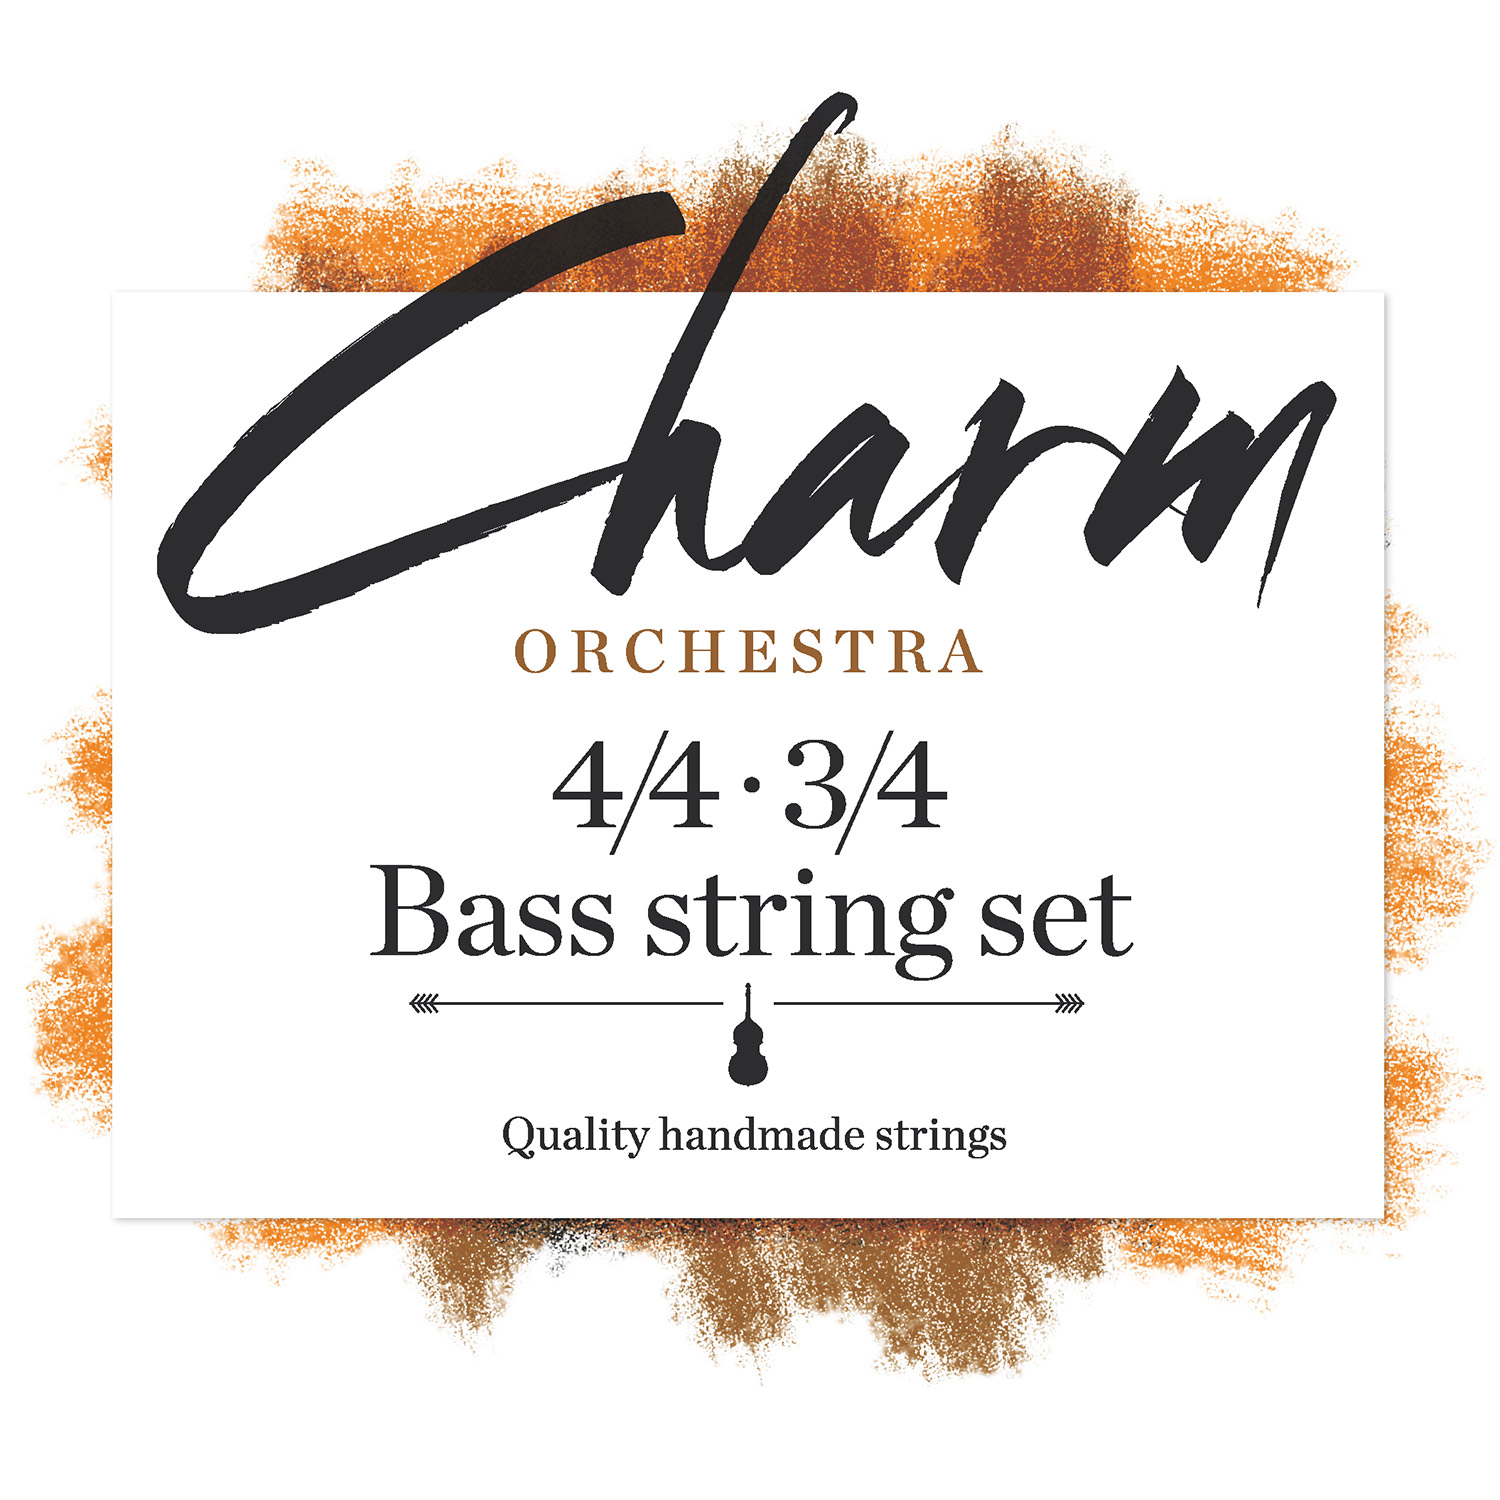 Charm Bass Orchestra 4/4 & 3/4